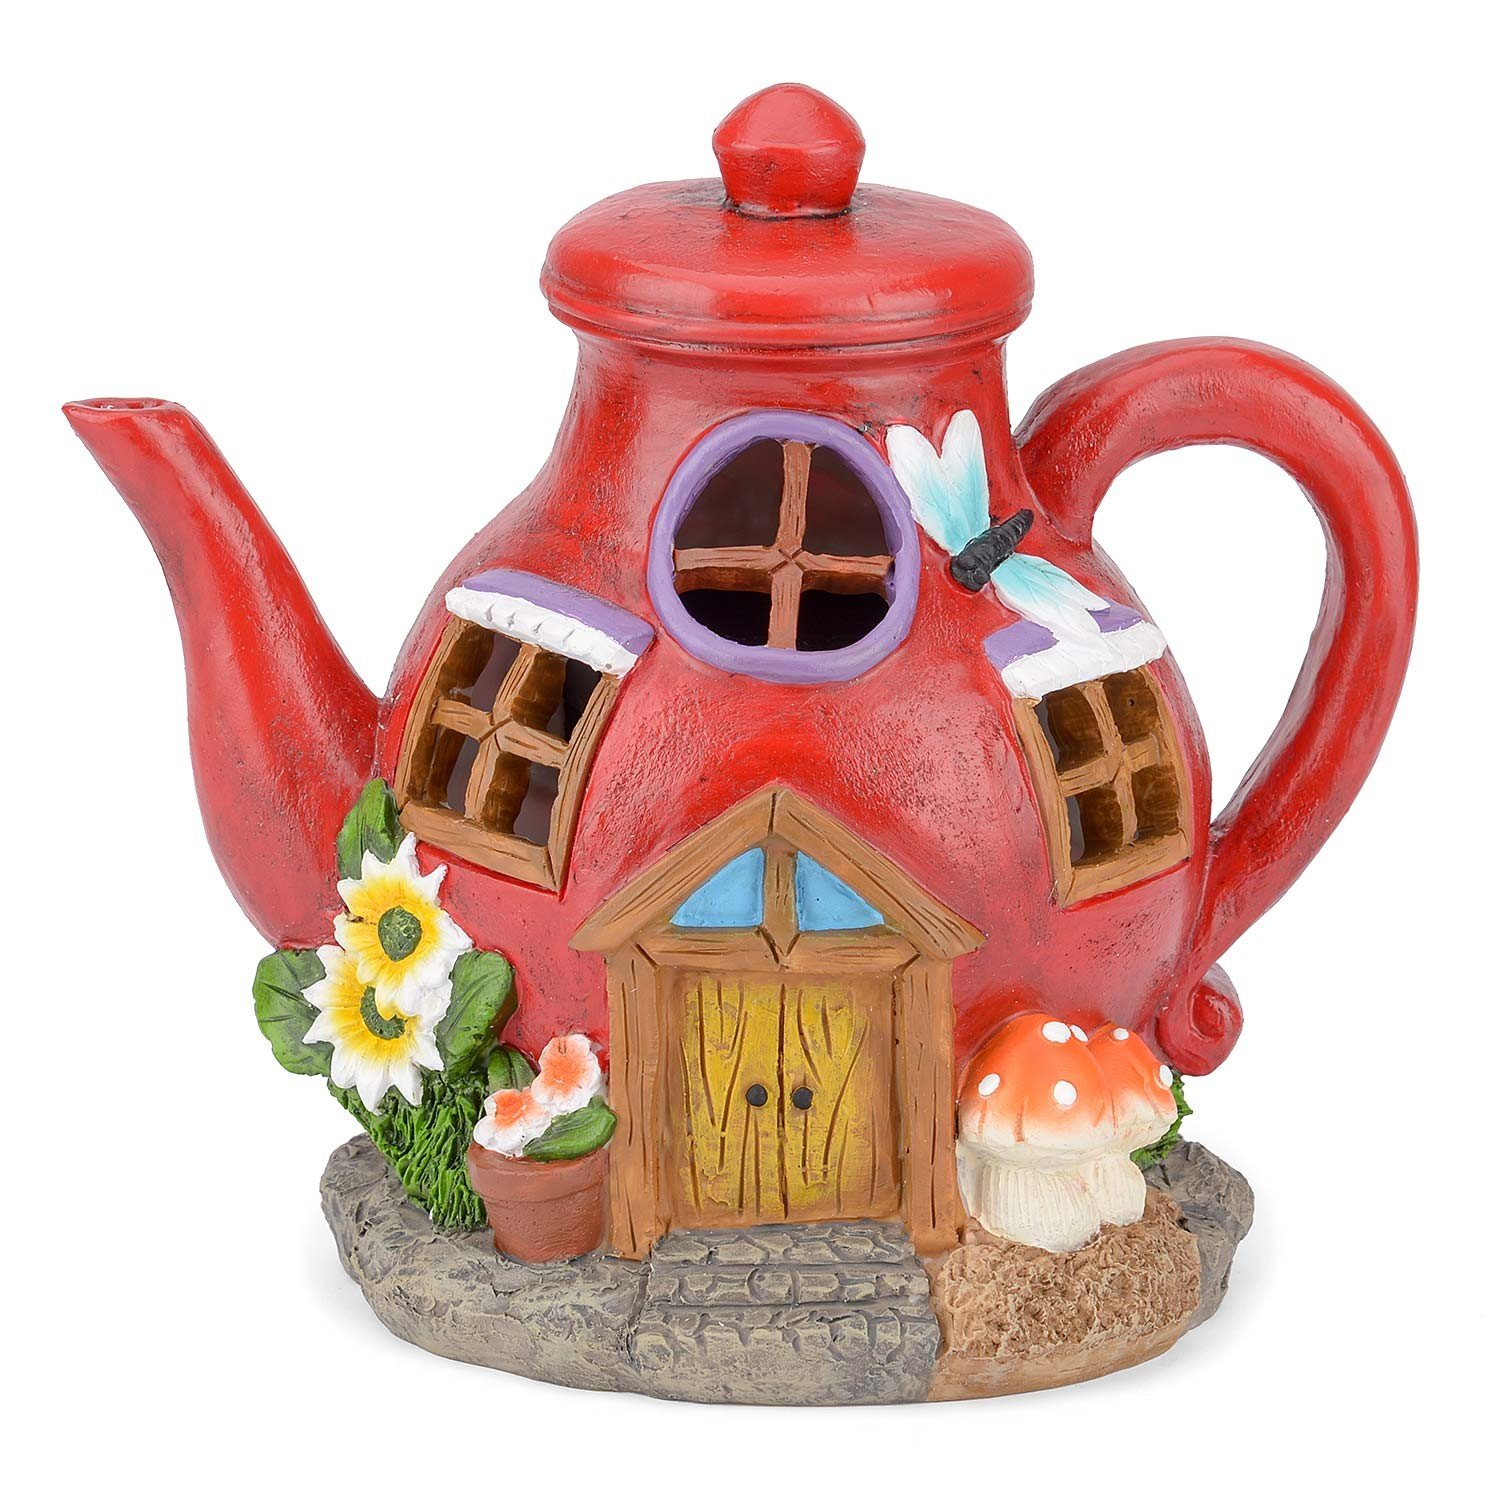 Christow Solar Powered Fairy House LED Watering Can Garden Light Outdoor Ornament Purple